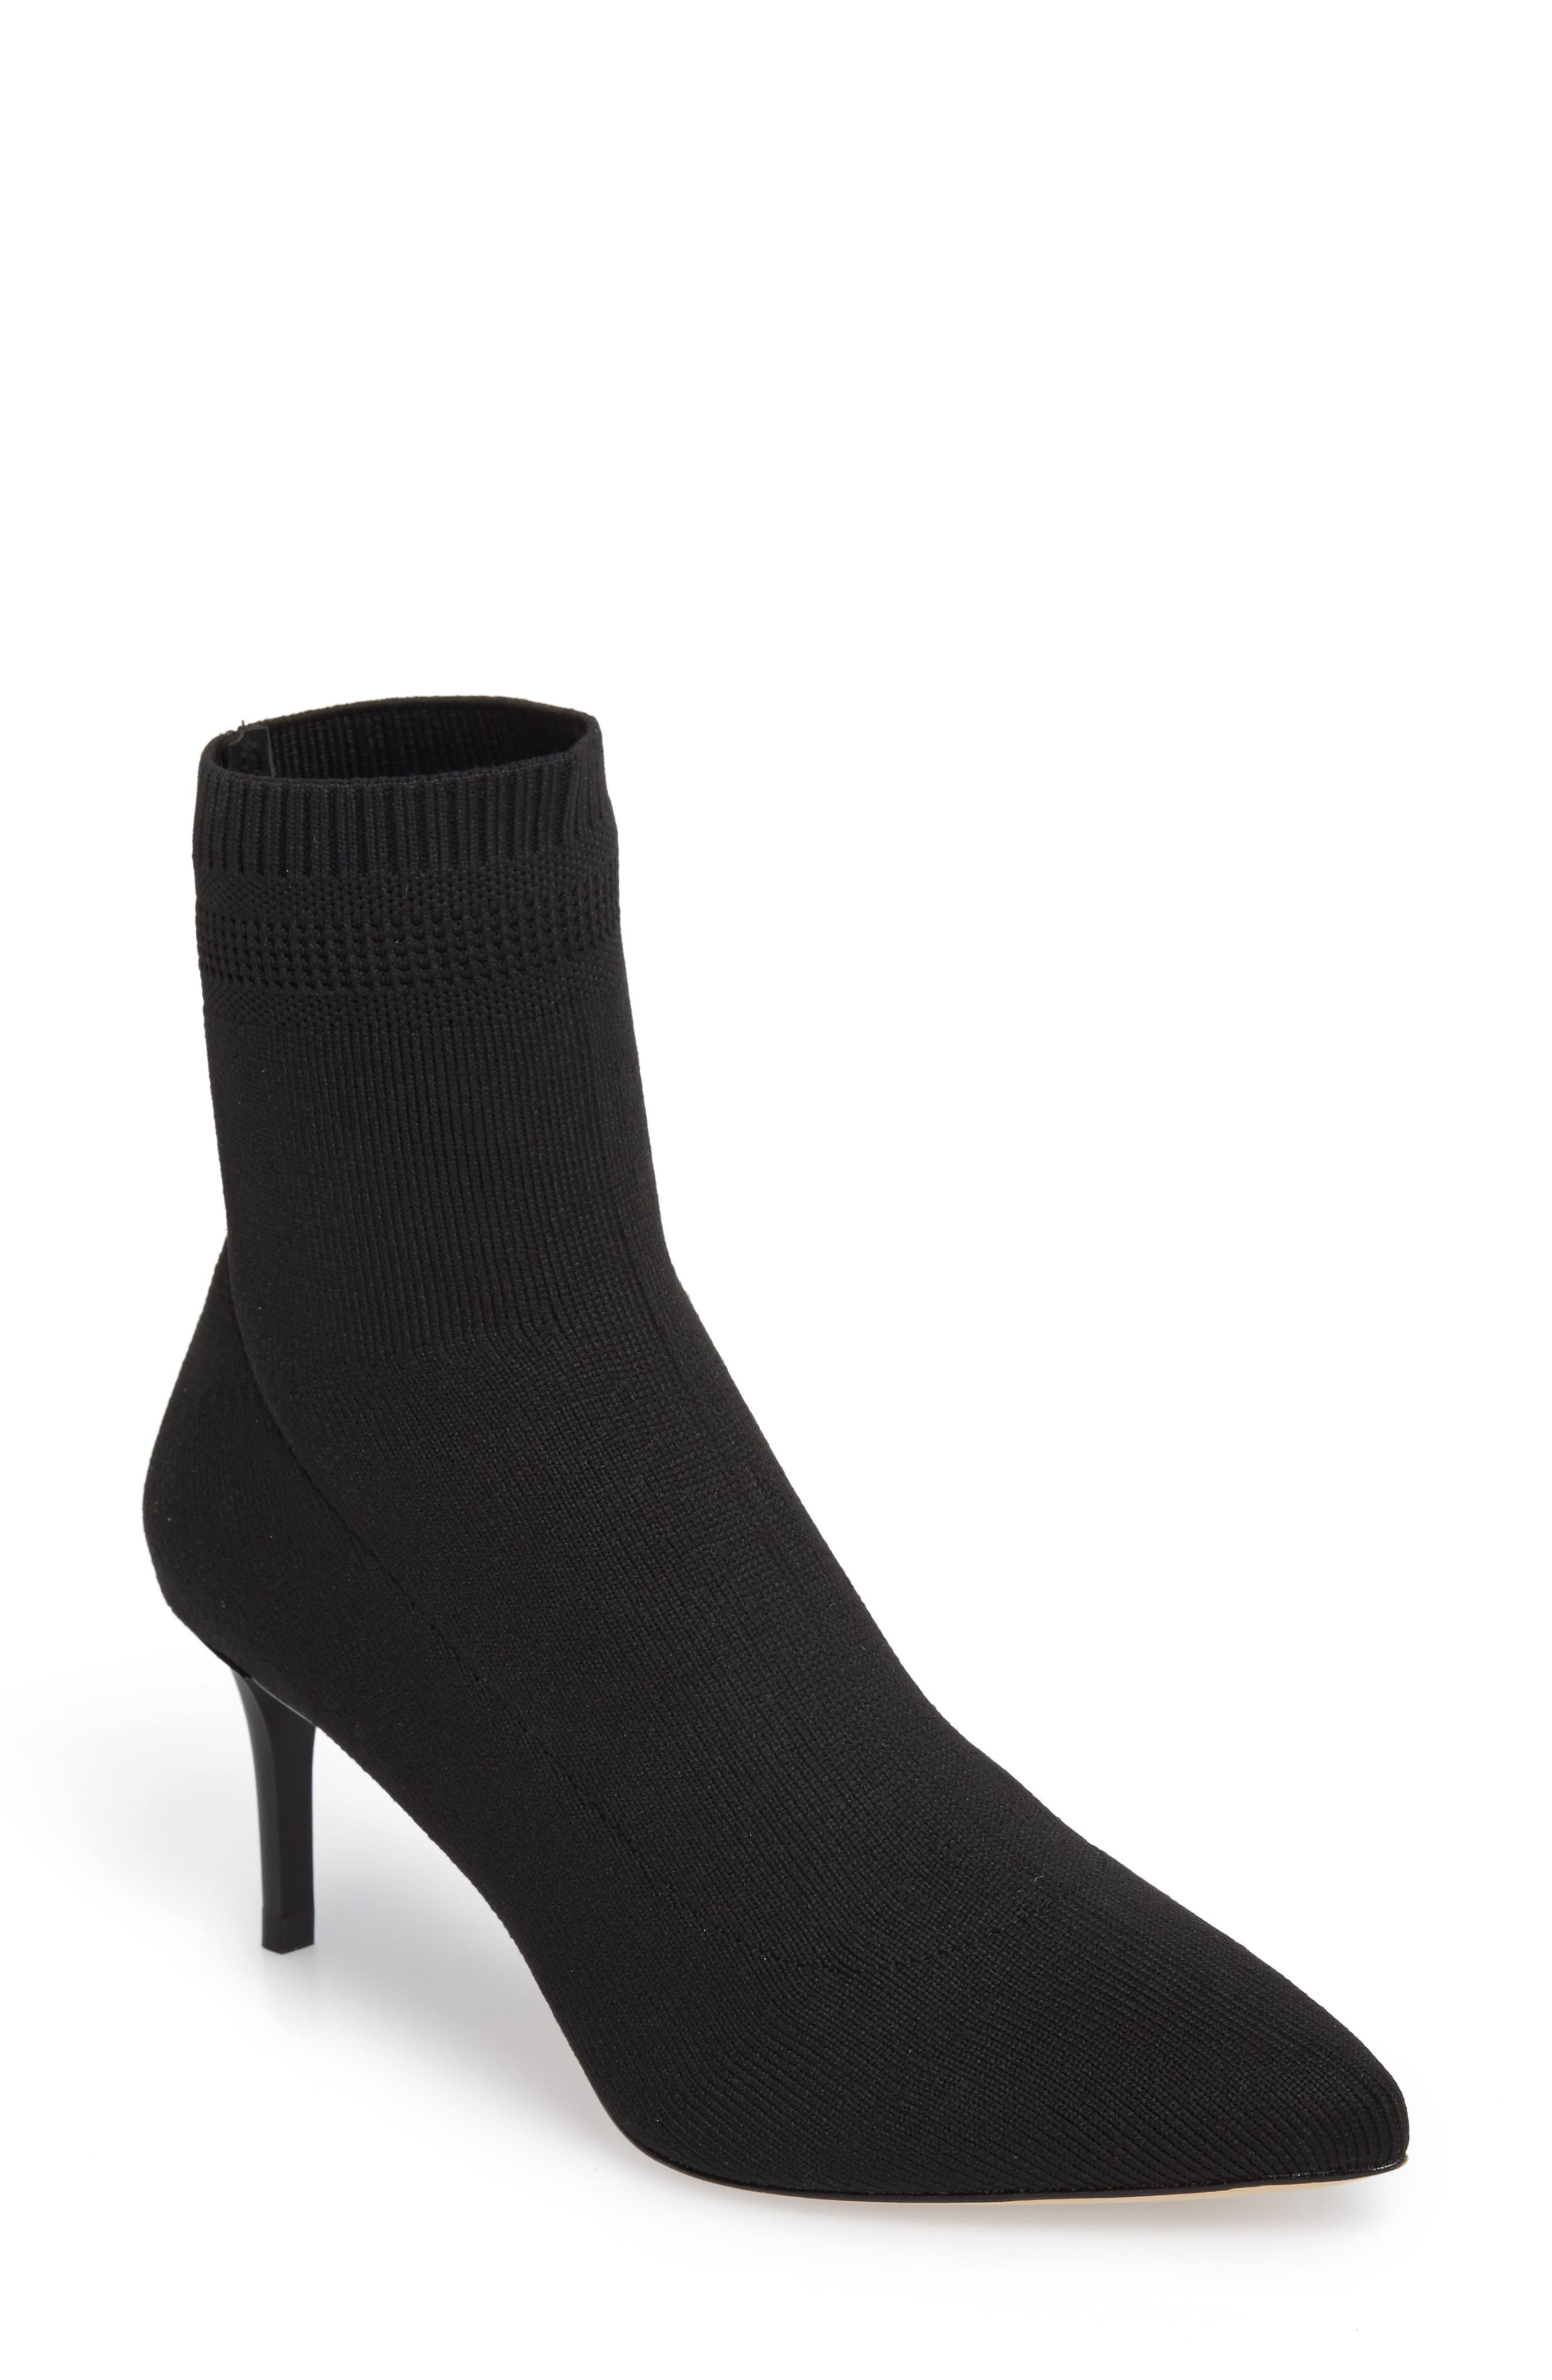 Daphne Bootie,                         Main,                         color, Black